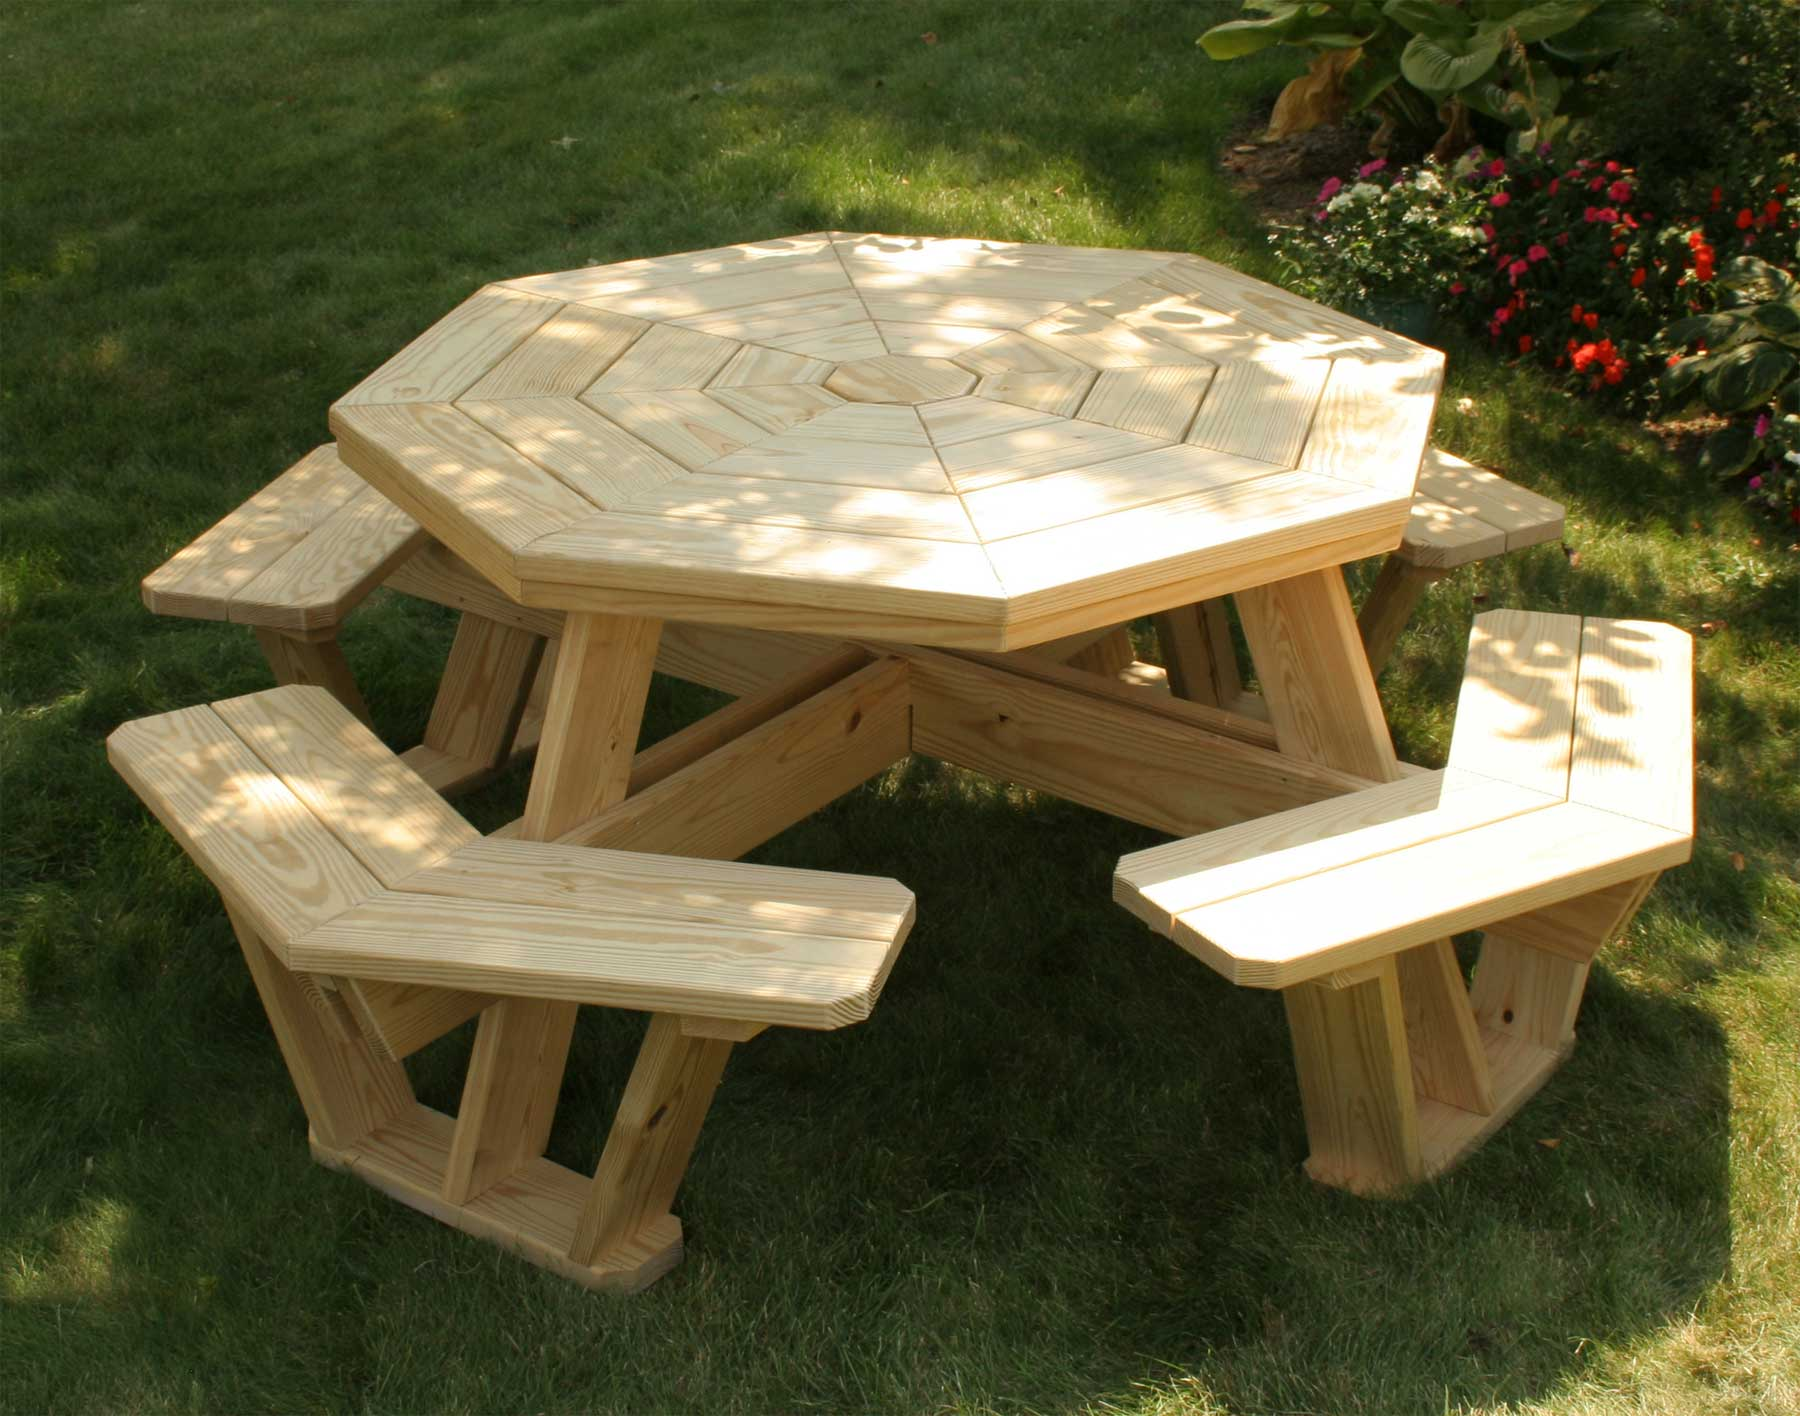 Miraculous Treated Pine Octagon Walk In Picnic Table Interior Design Ideas Gentotthenellocom